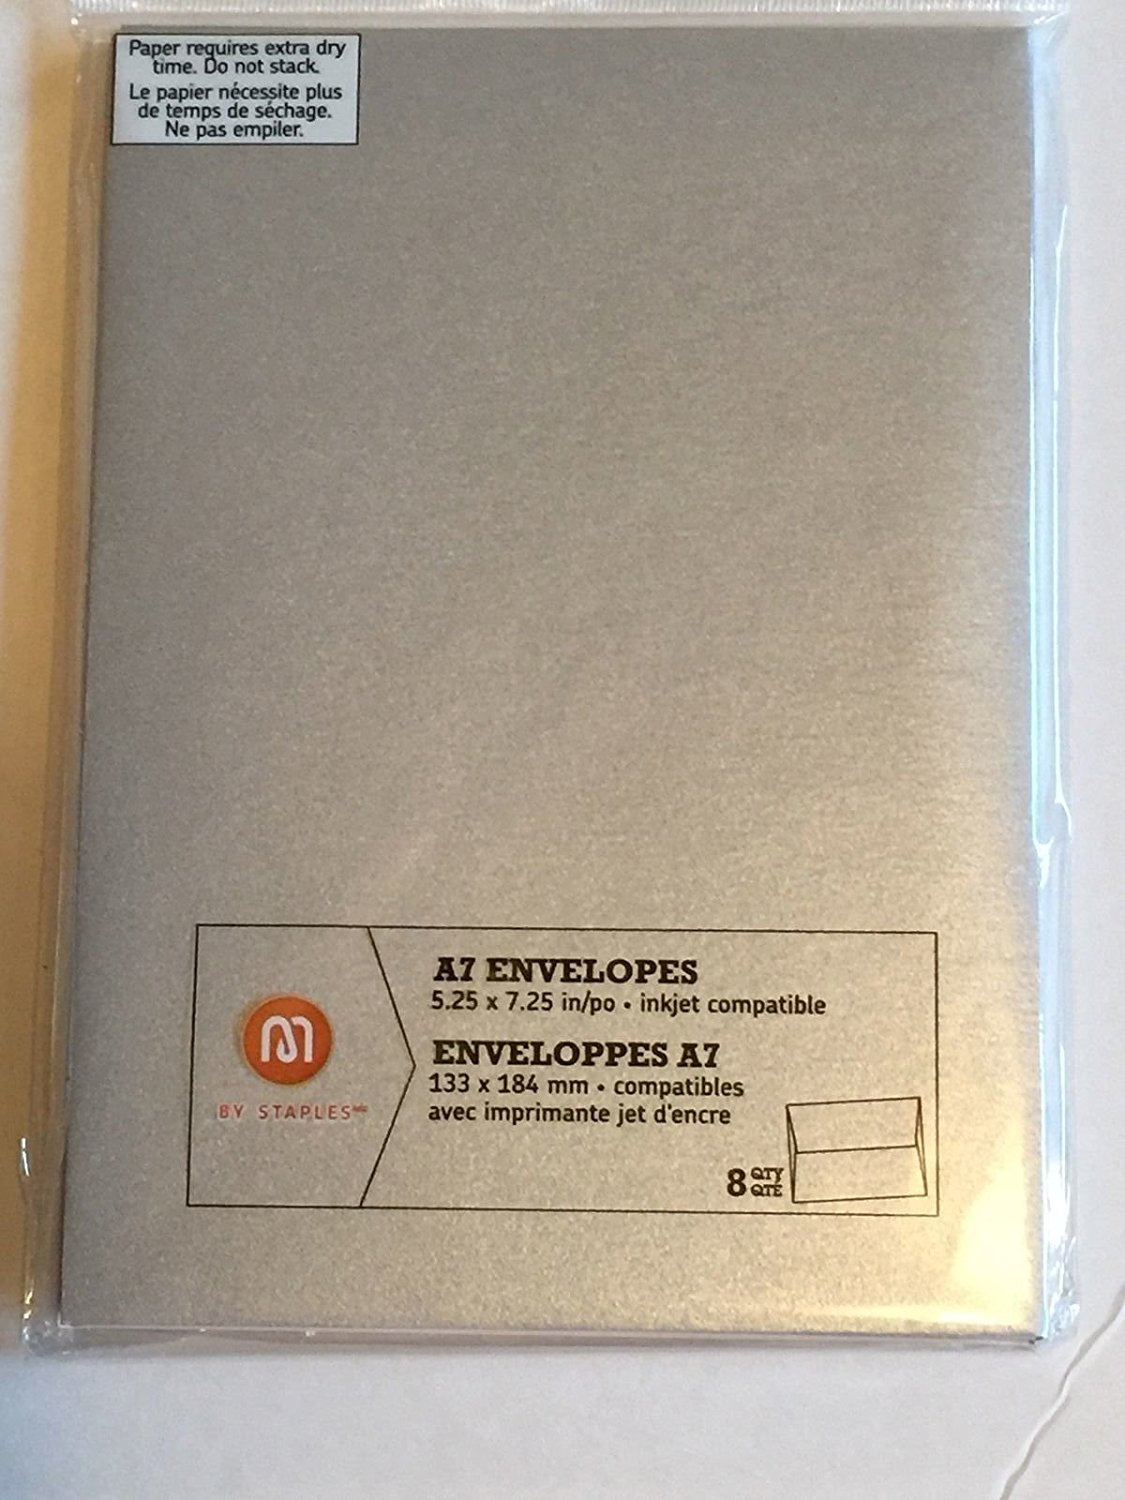 """M by Staples A7 Envelopes Silver 5.25"""" x 7.25""""- 8 Count"""